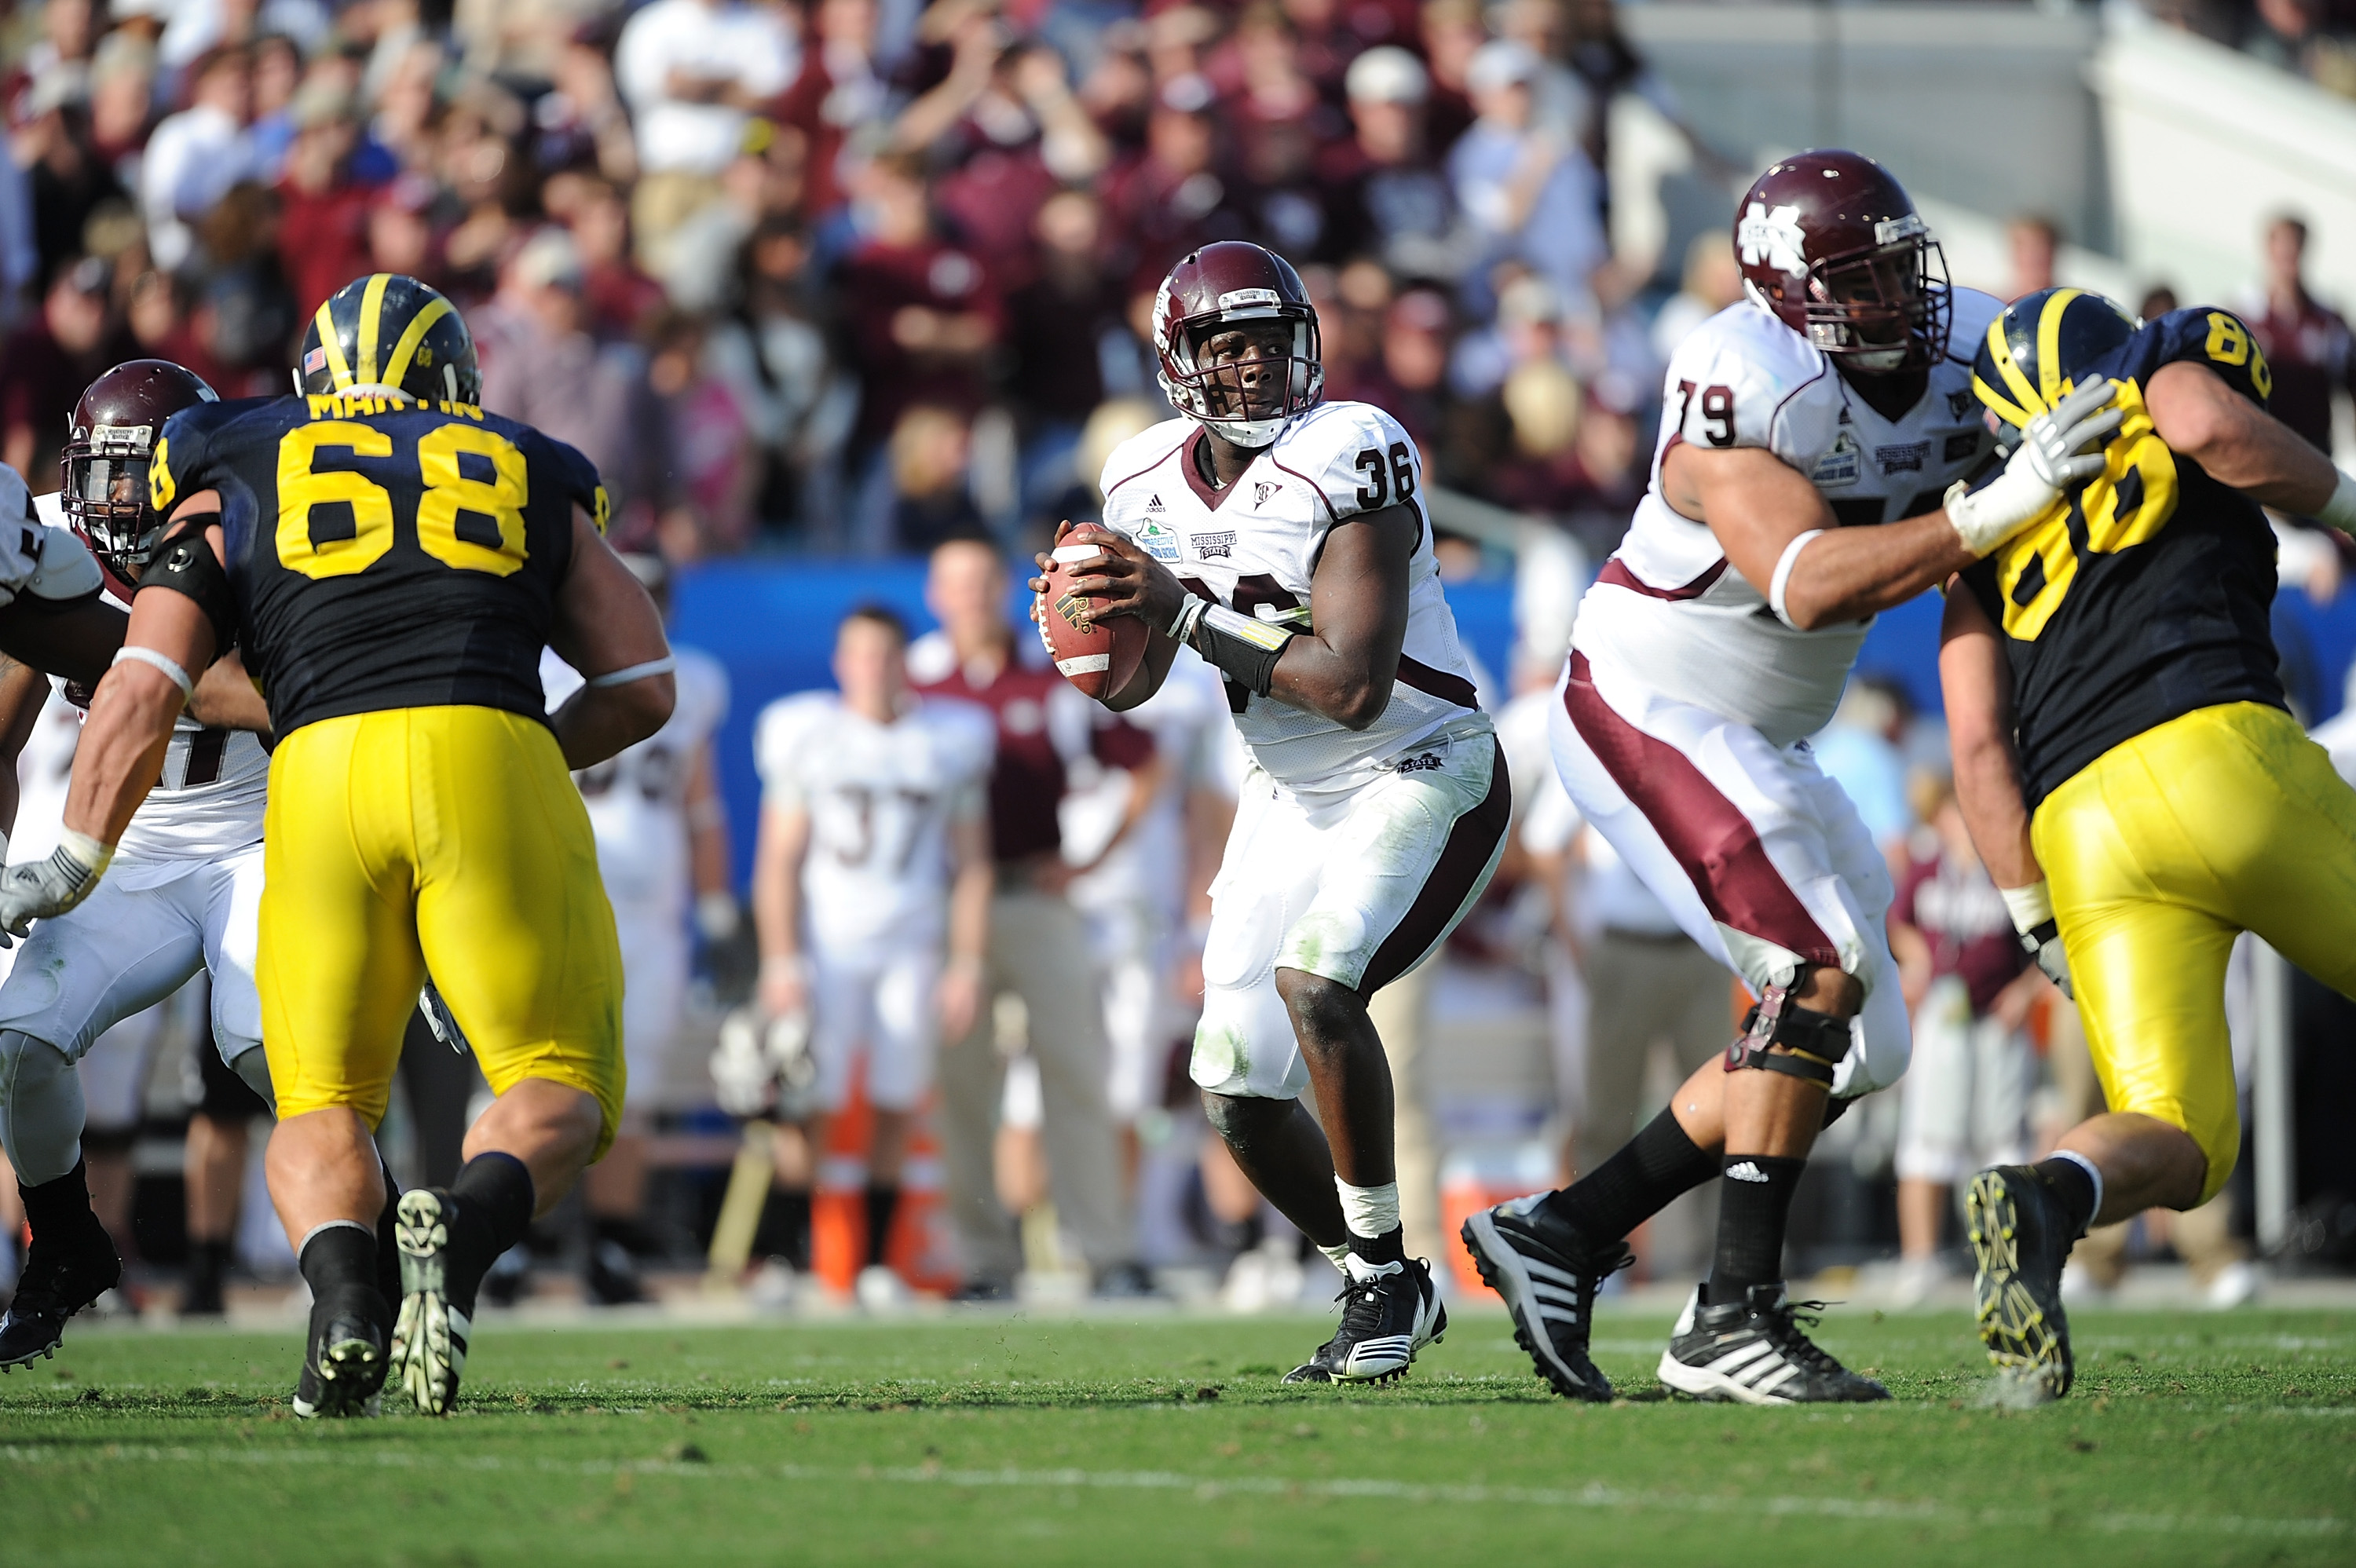 JACKSONVILLE, FL - JANUARY 01:  Quarterback Chris Relf #36 of the Mississippi State Bulldogs passes against the Michigan Wolverines during the Gator Bowl at EverBank Field on January 1, 2011 in Jacksonville, Florida  (Photo by Rick Dole/Getty Images)